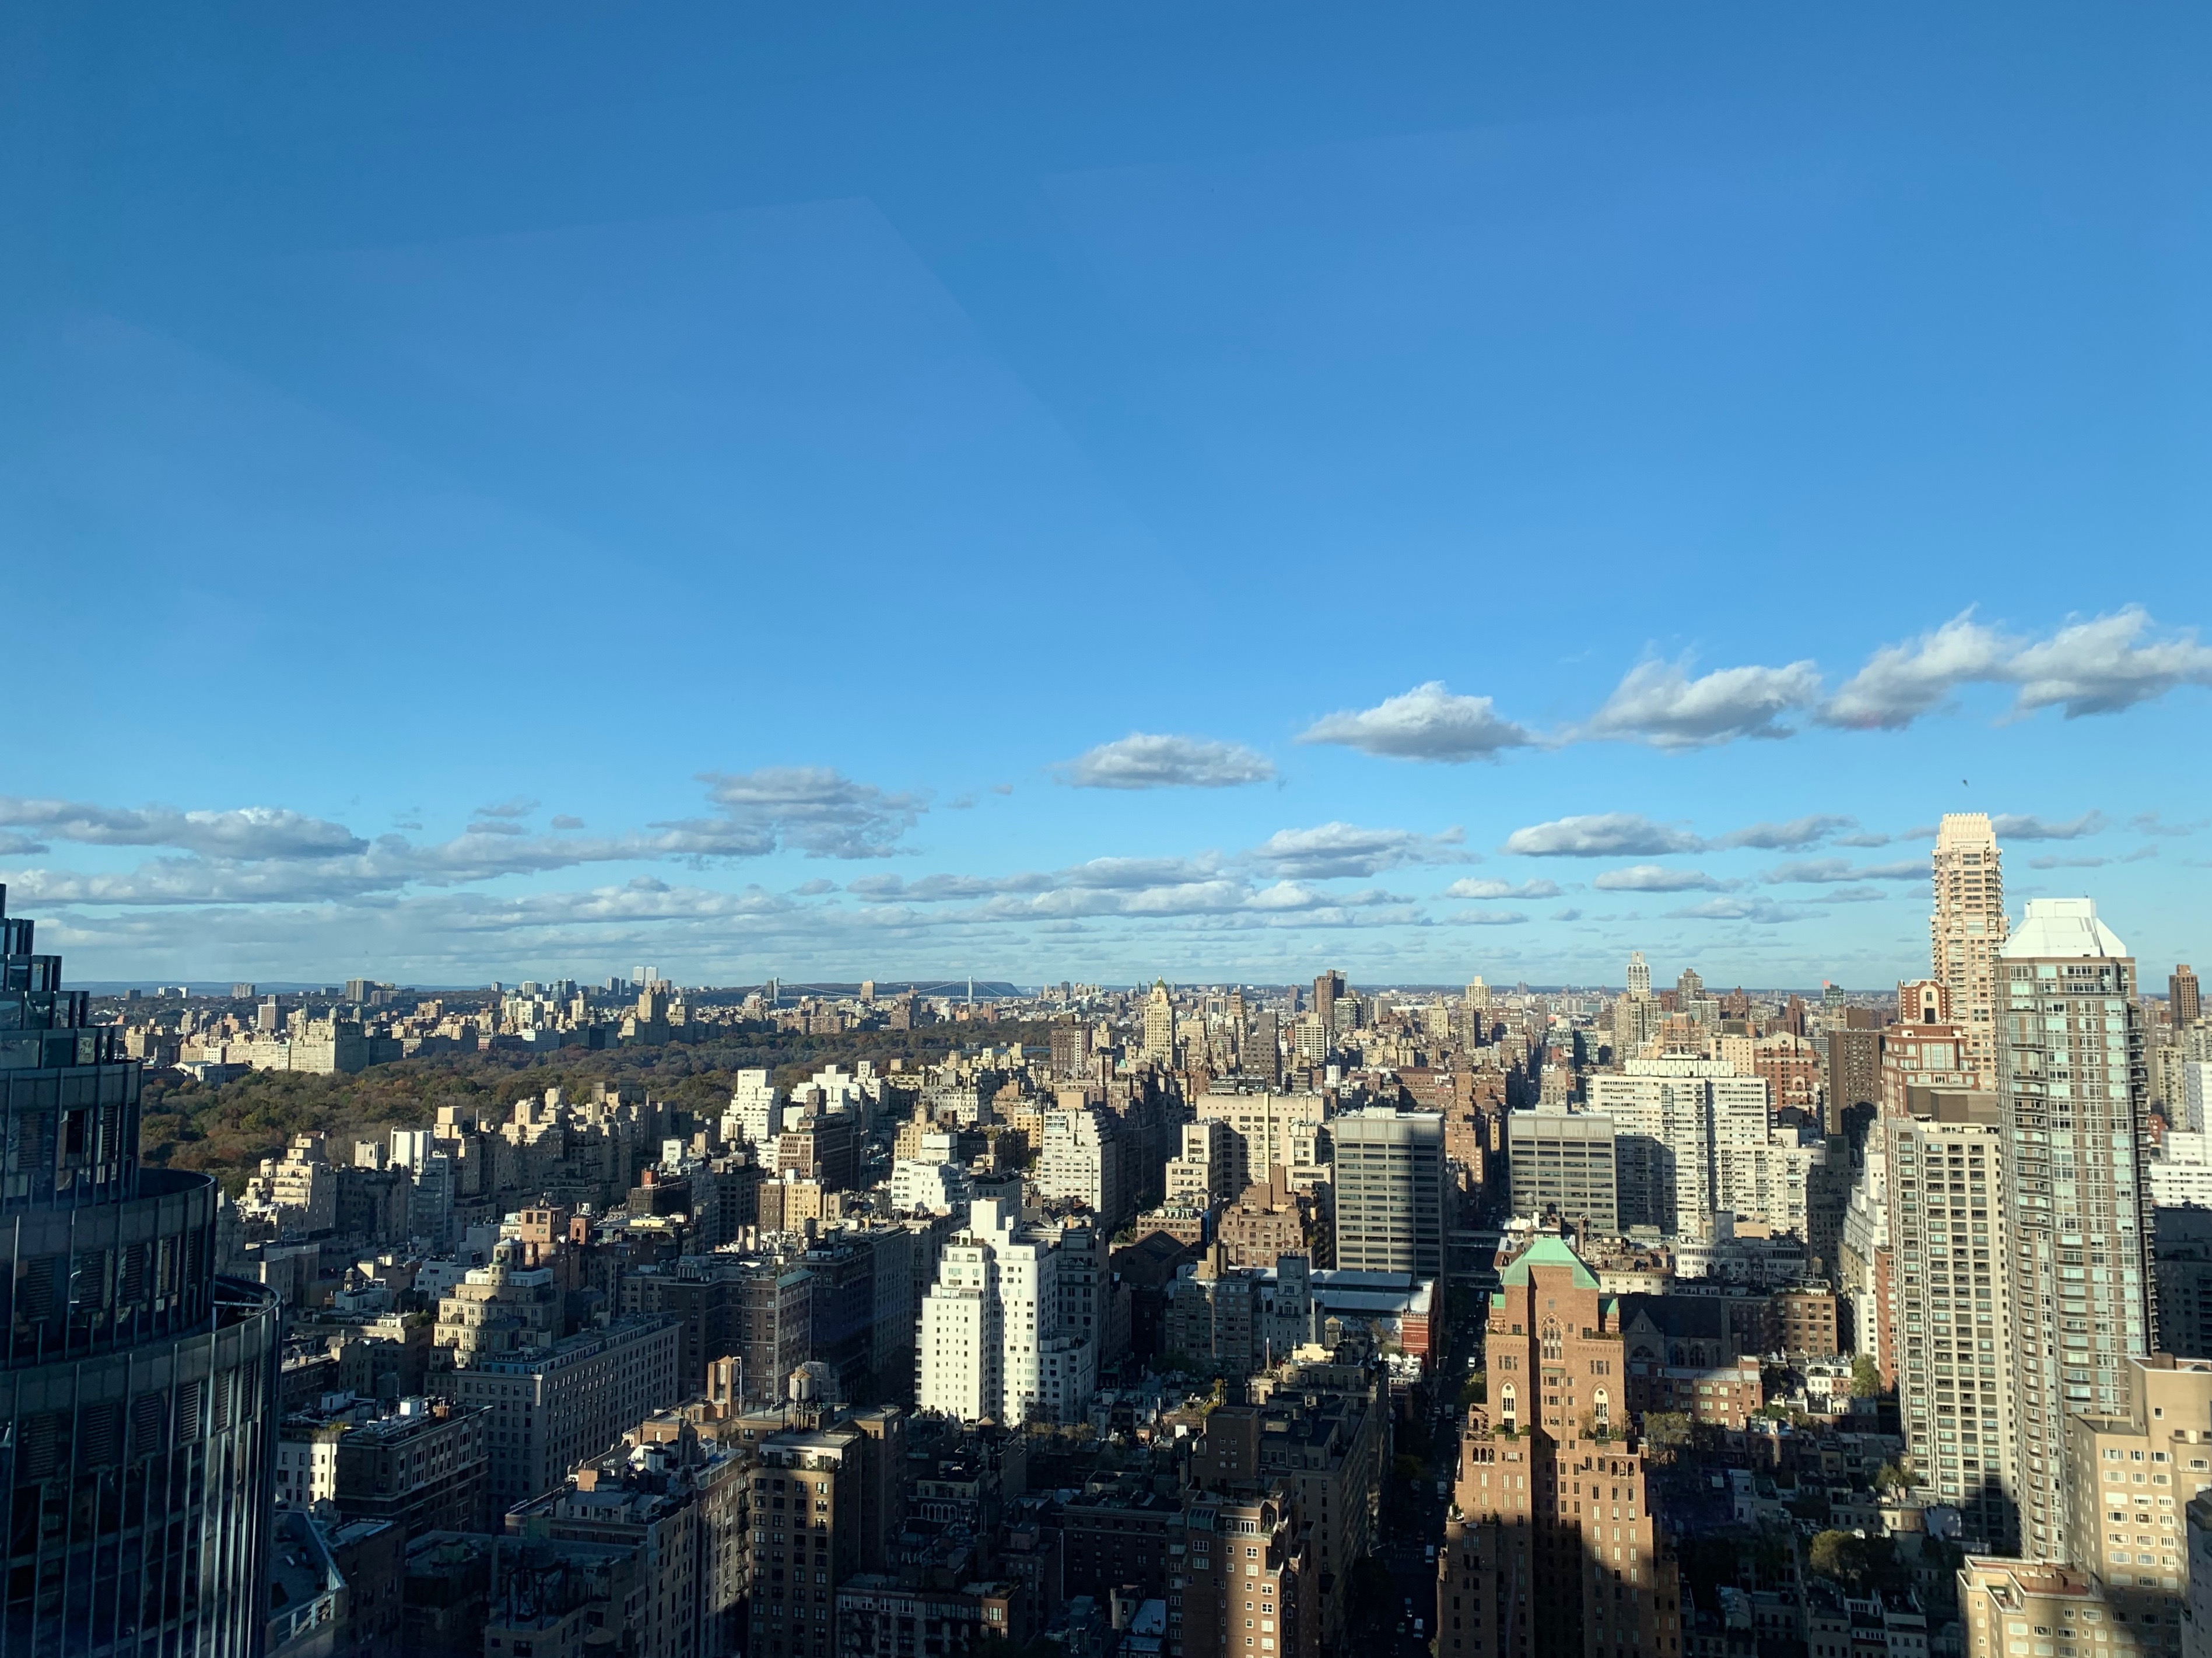 View of New York City from the Bloomberg News headquarters